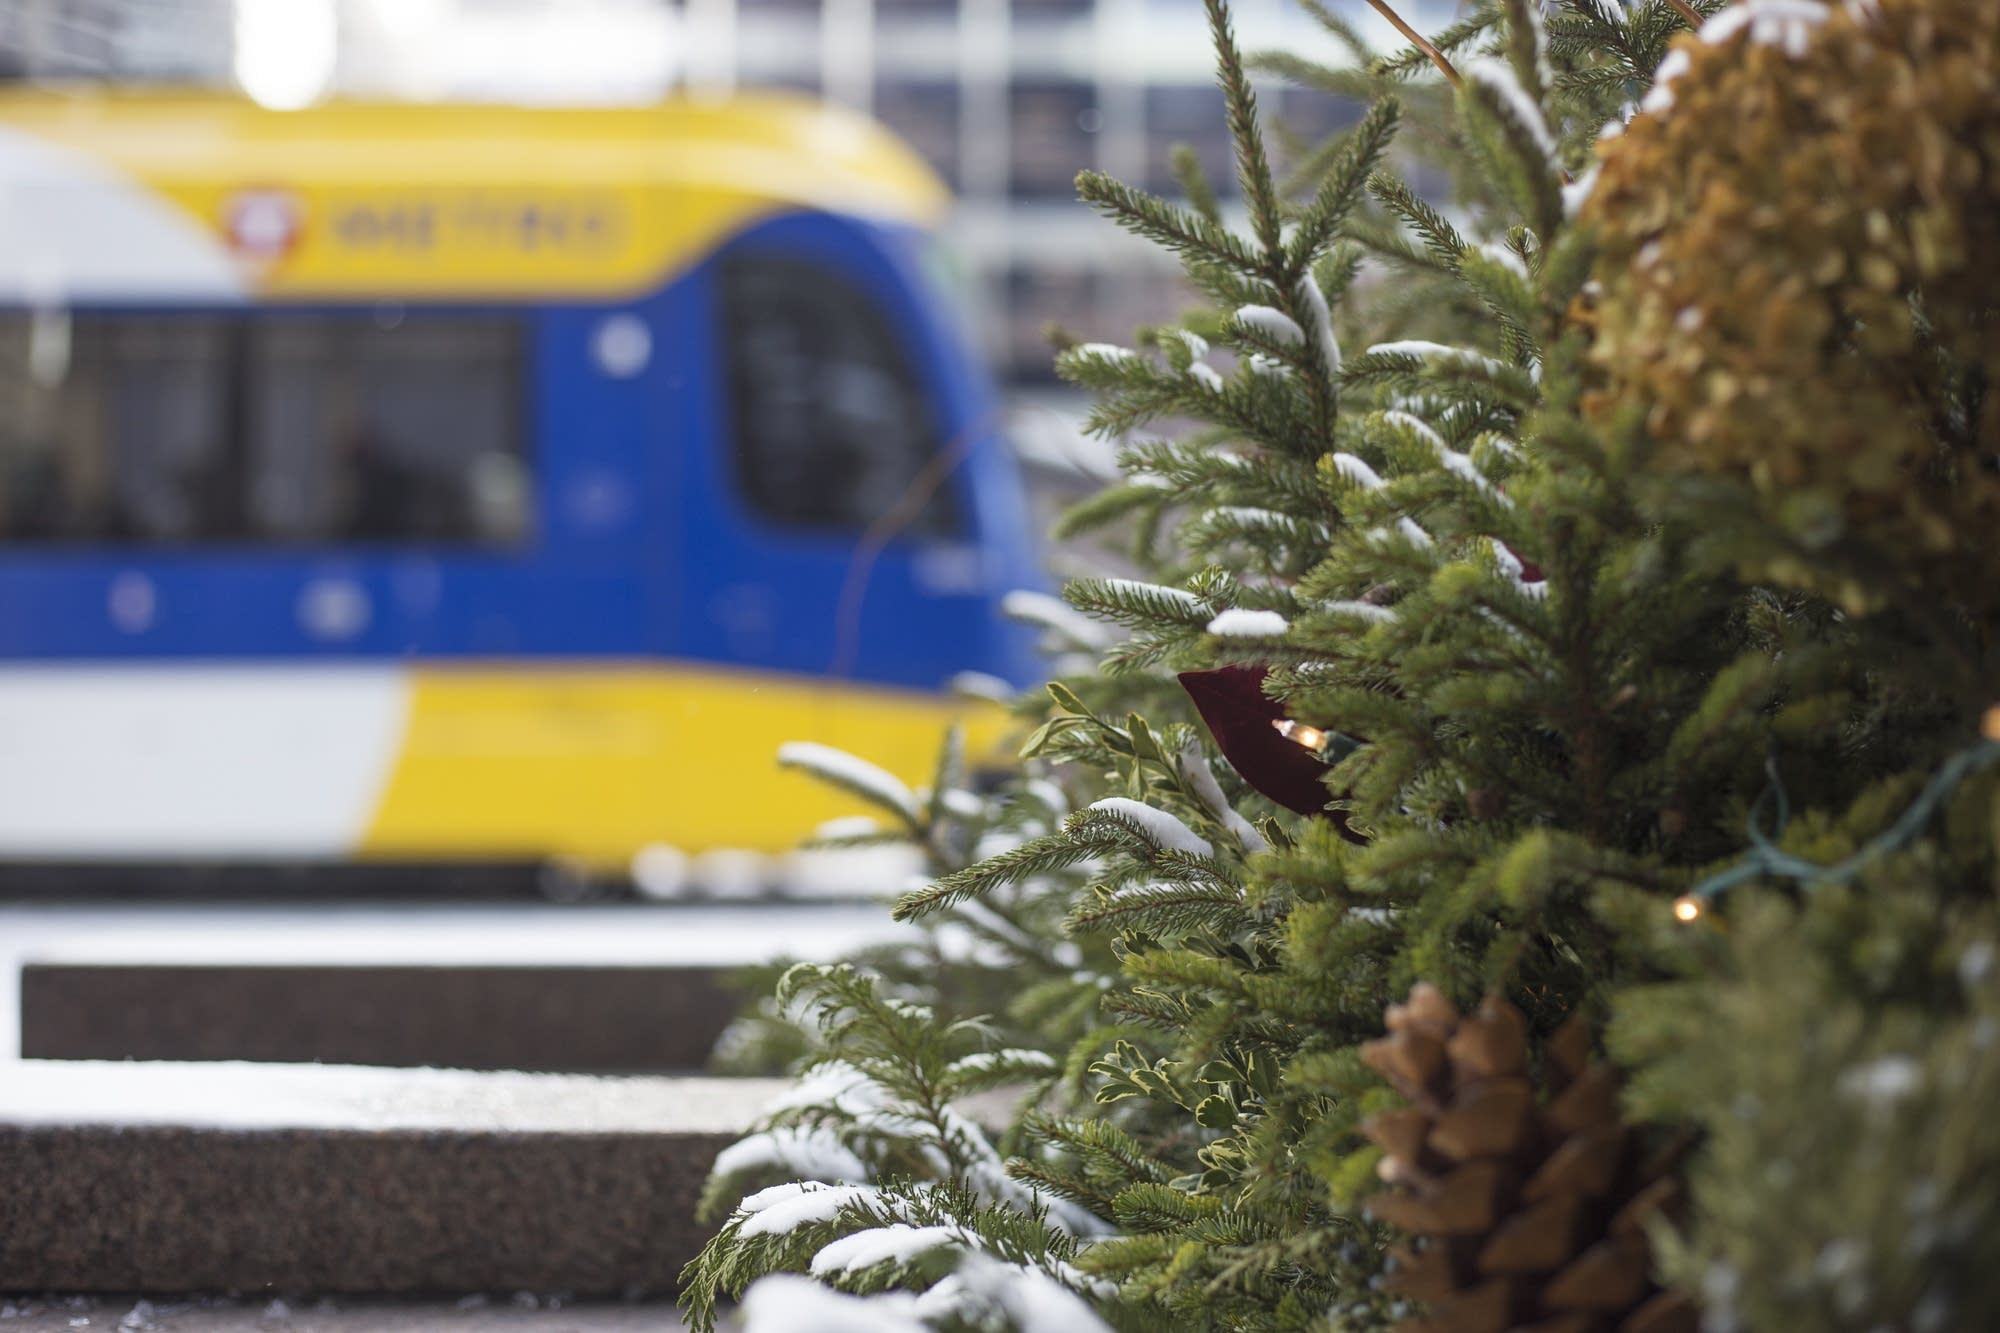 The green line is active through downtown Minneapolis on Tuesday, Dec. 5.